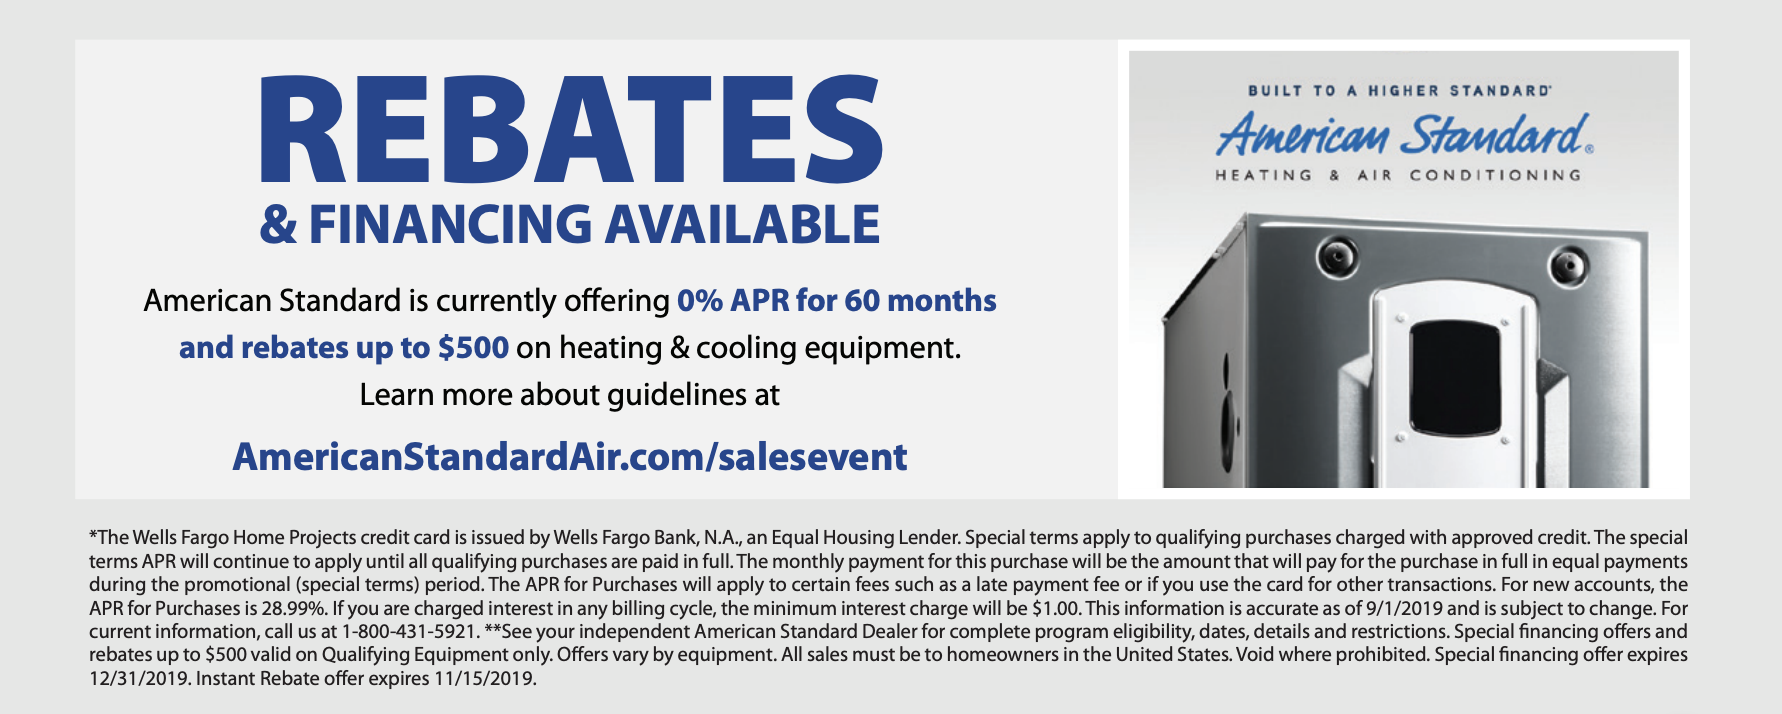 American Standard is currently offering 0% APR for 60 months and rebates up to $500 on heating & cooling equipment.